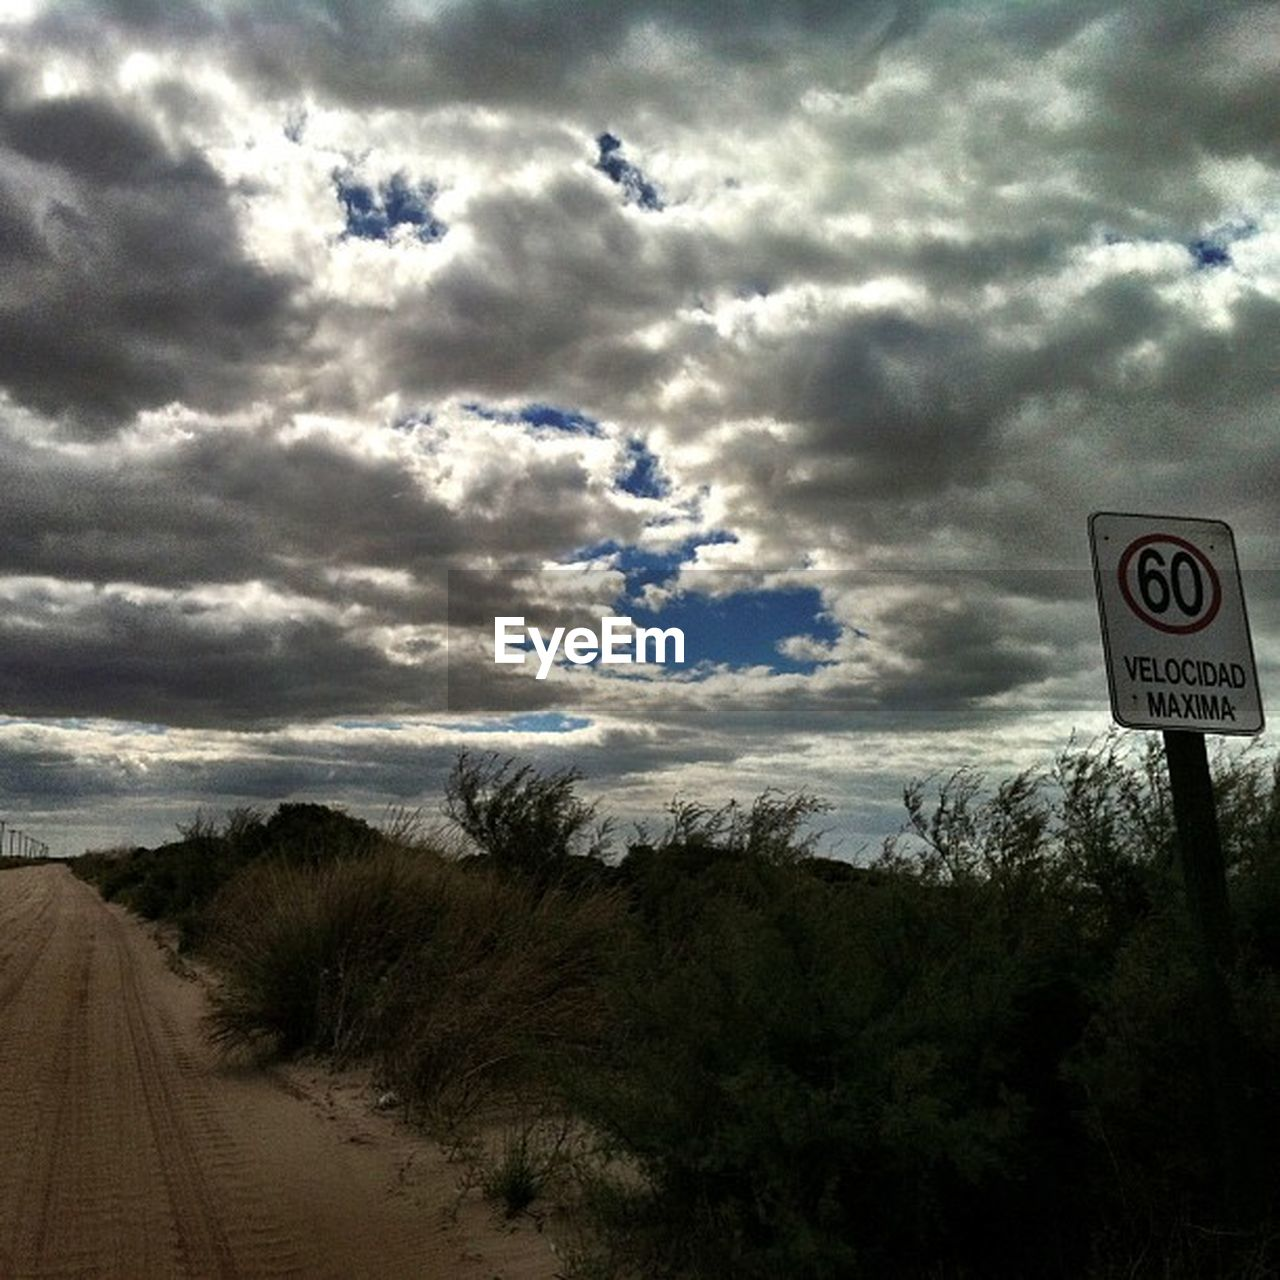 sky, cloud - sky, road, tree, text, communication, day, no people, road sign, nature, outdoors, growth